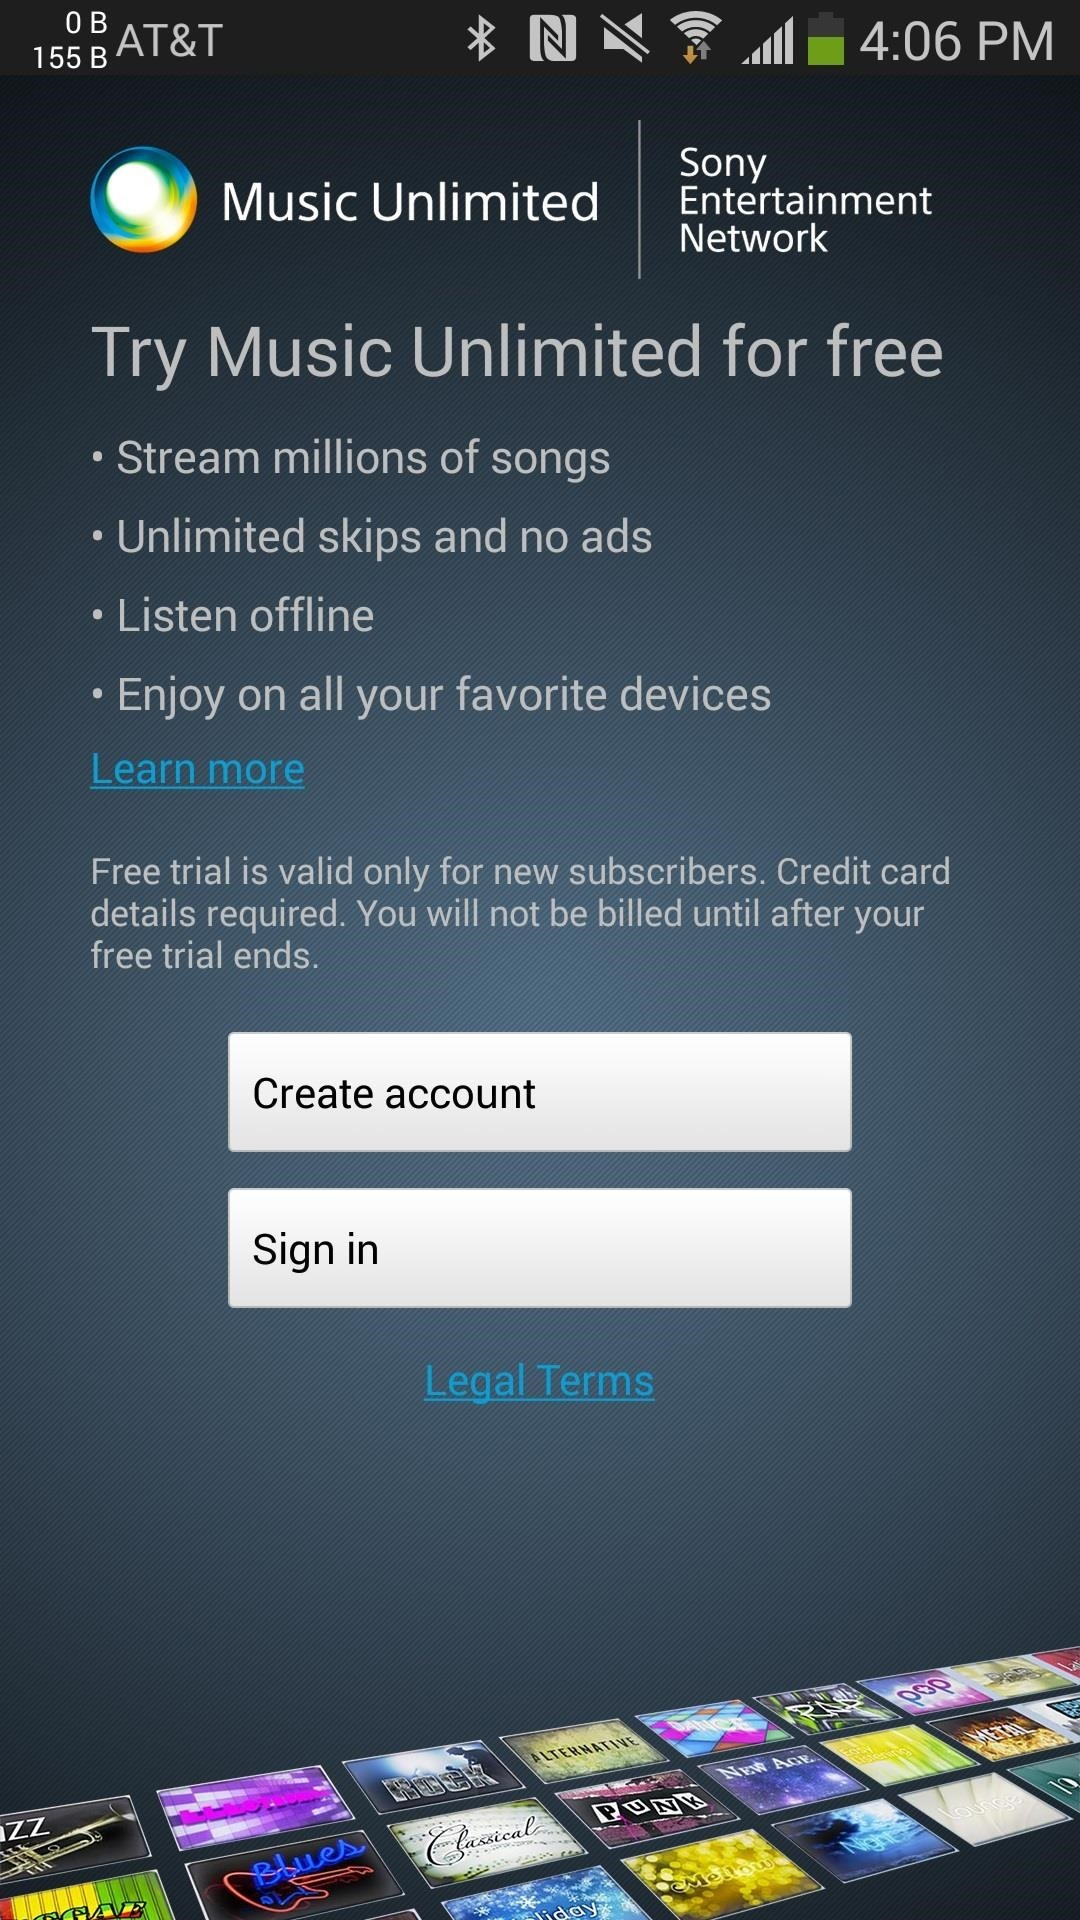 How to Get Sony's Exclusive Media Apps (Album, Movies, & Walkman) on Your Samsung Galaxy Note 3